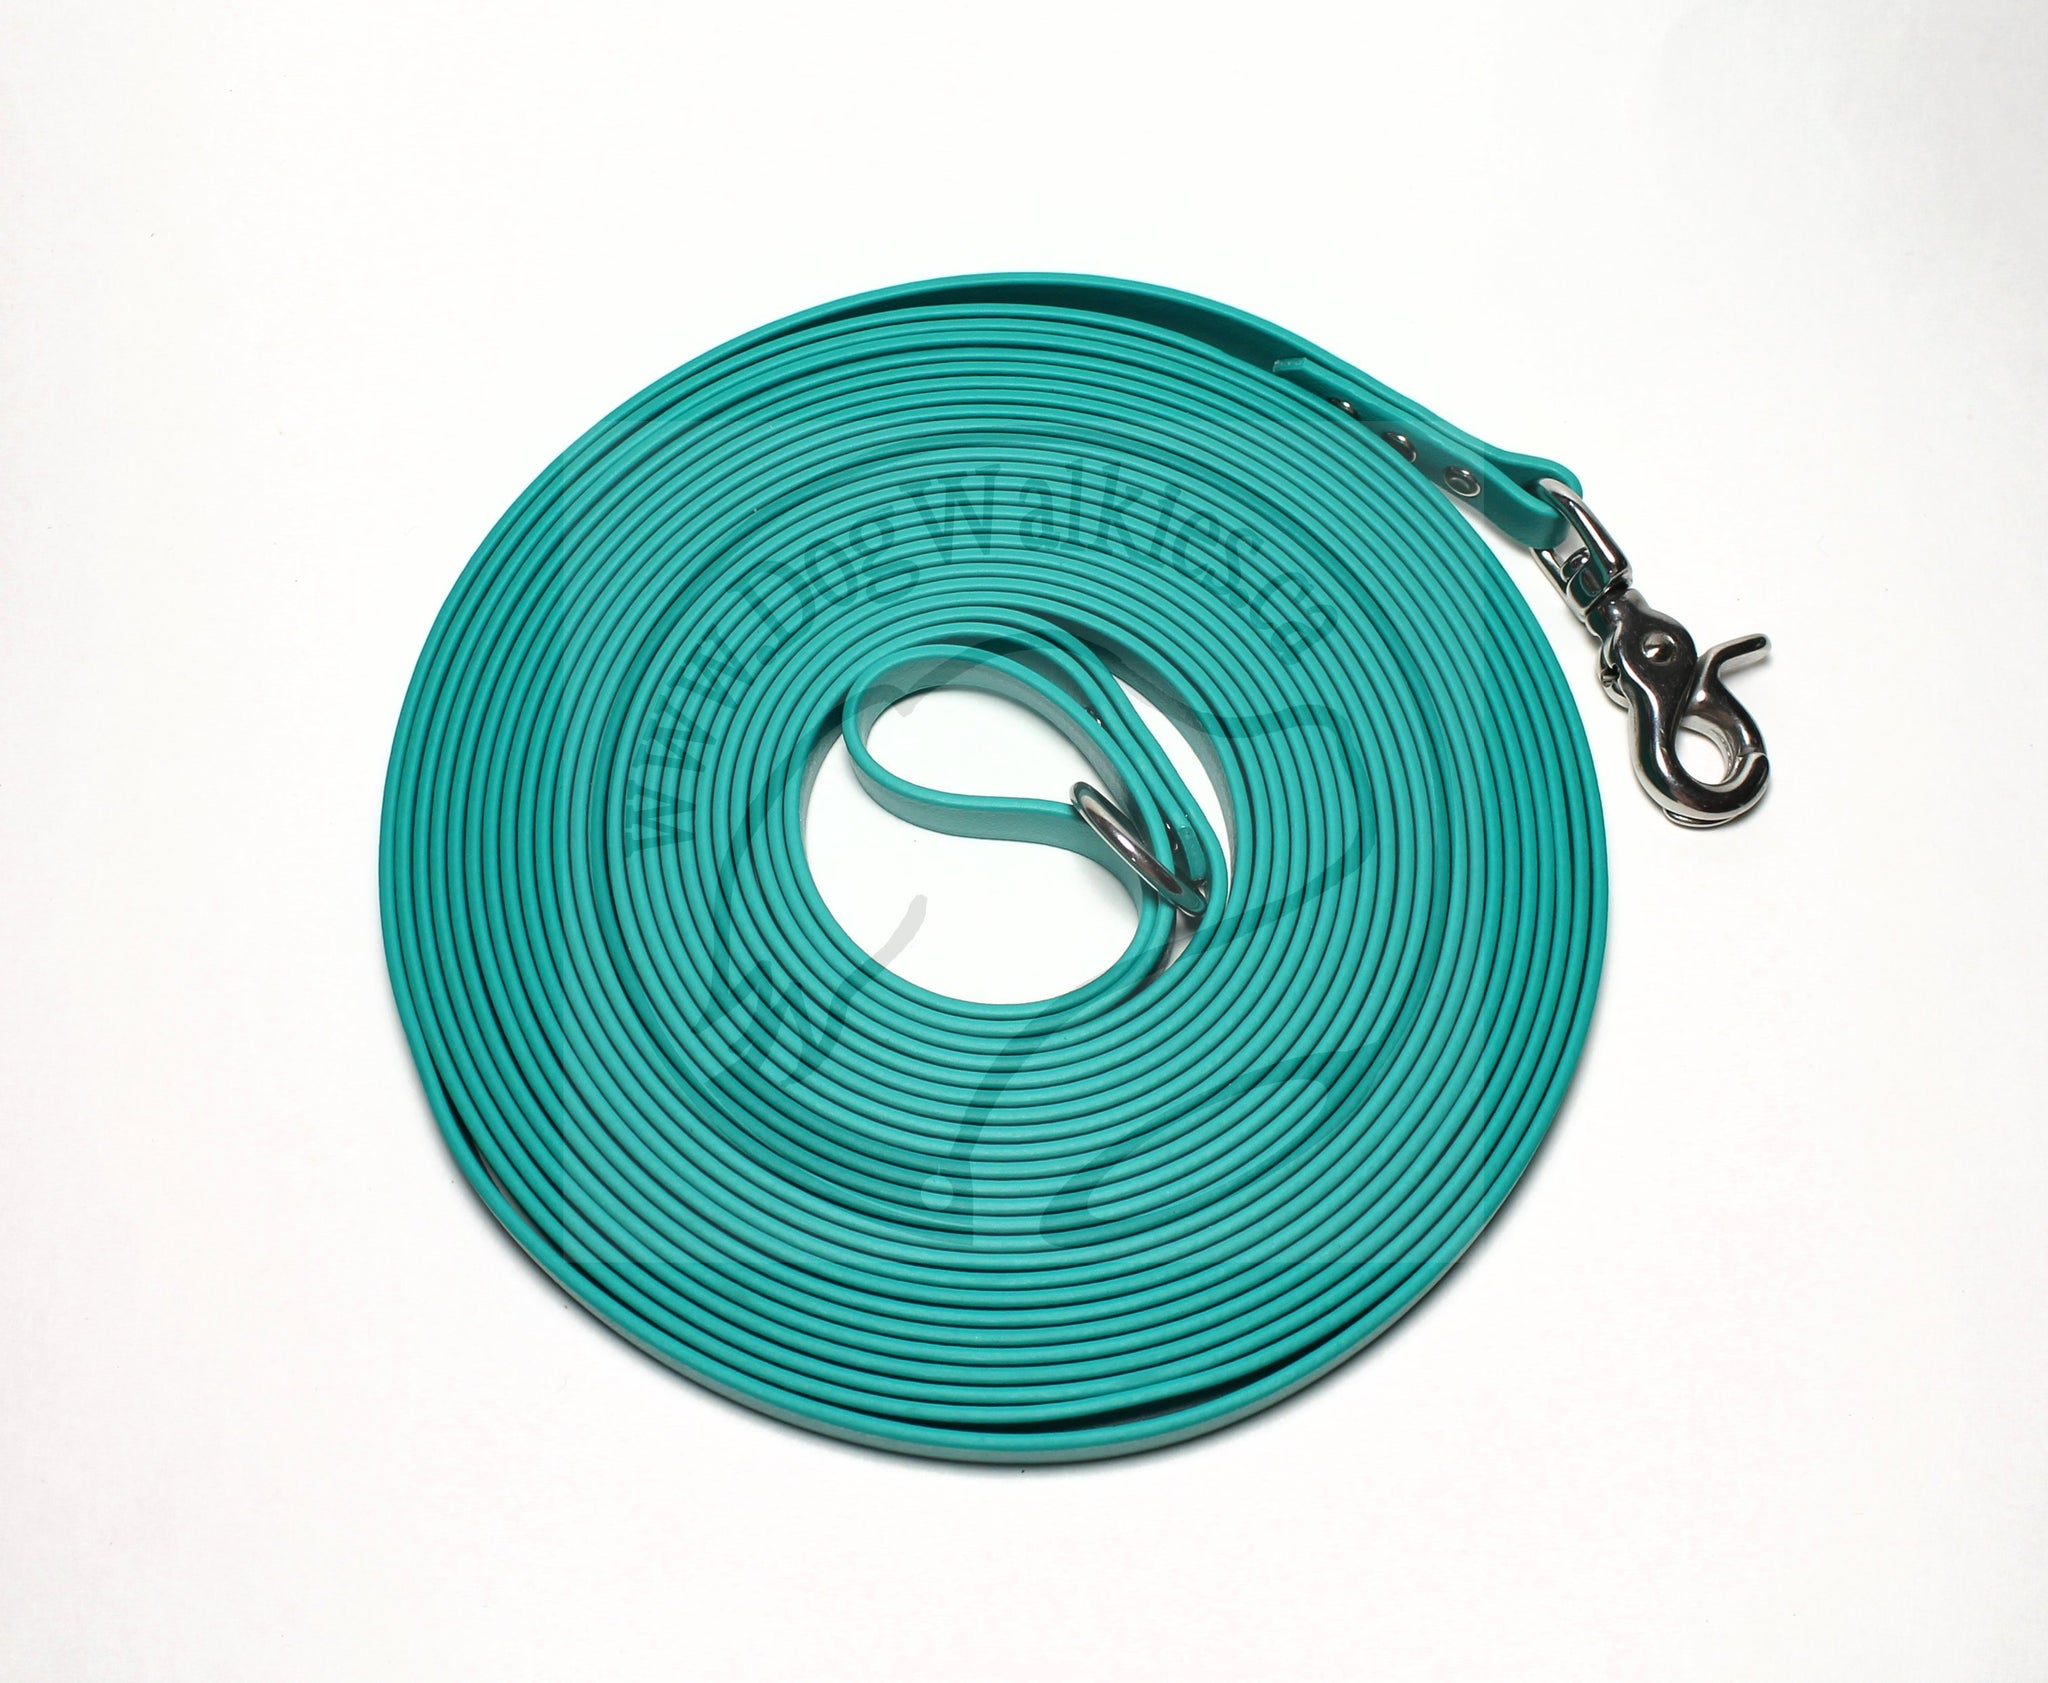 Teal Waterproof Tracking Recall Long Line